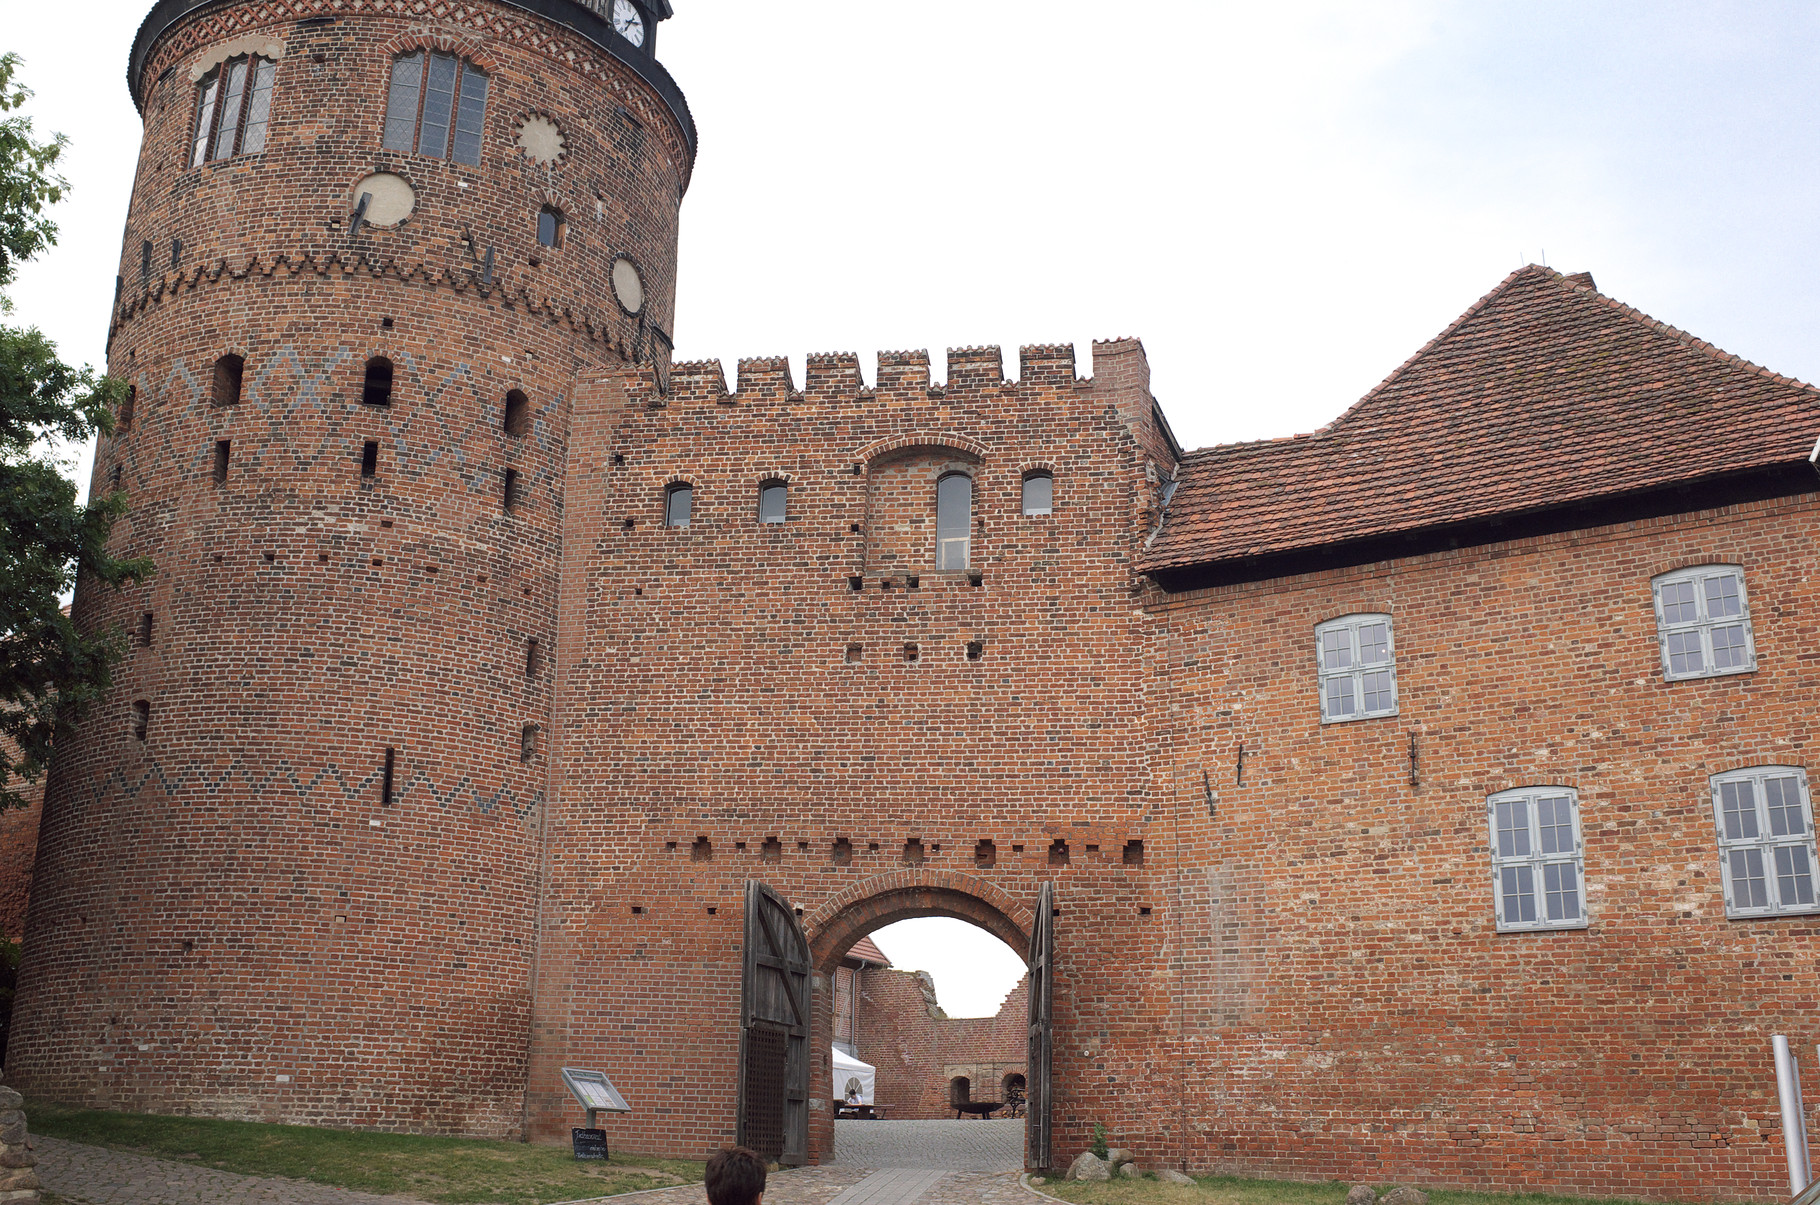 Burg in Neustadt-Glewe am 18.11.2015